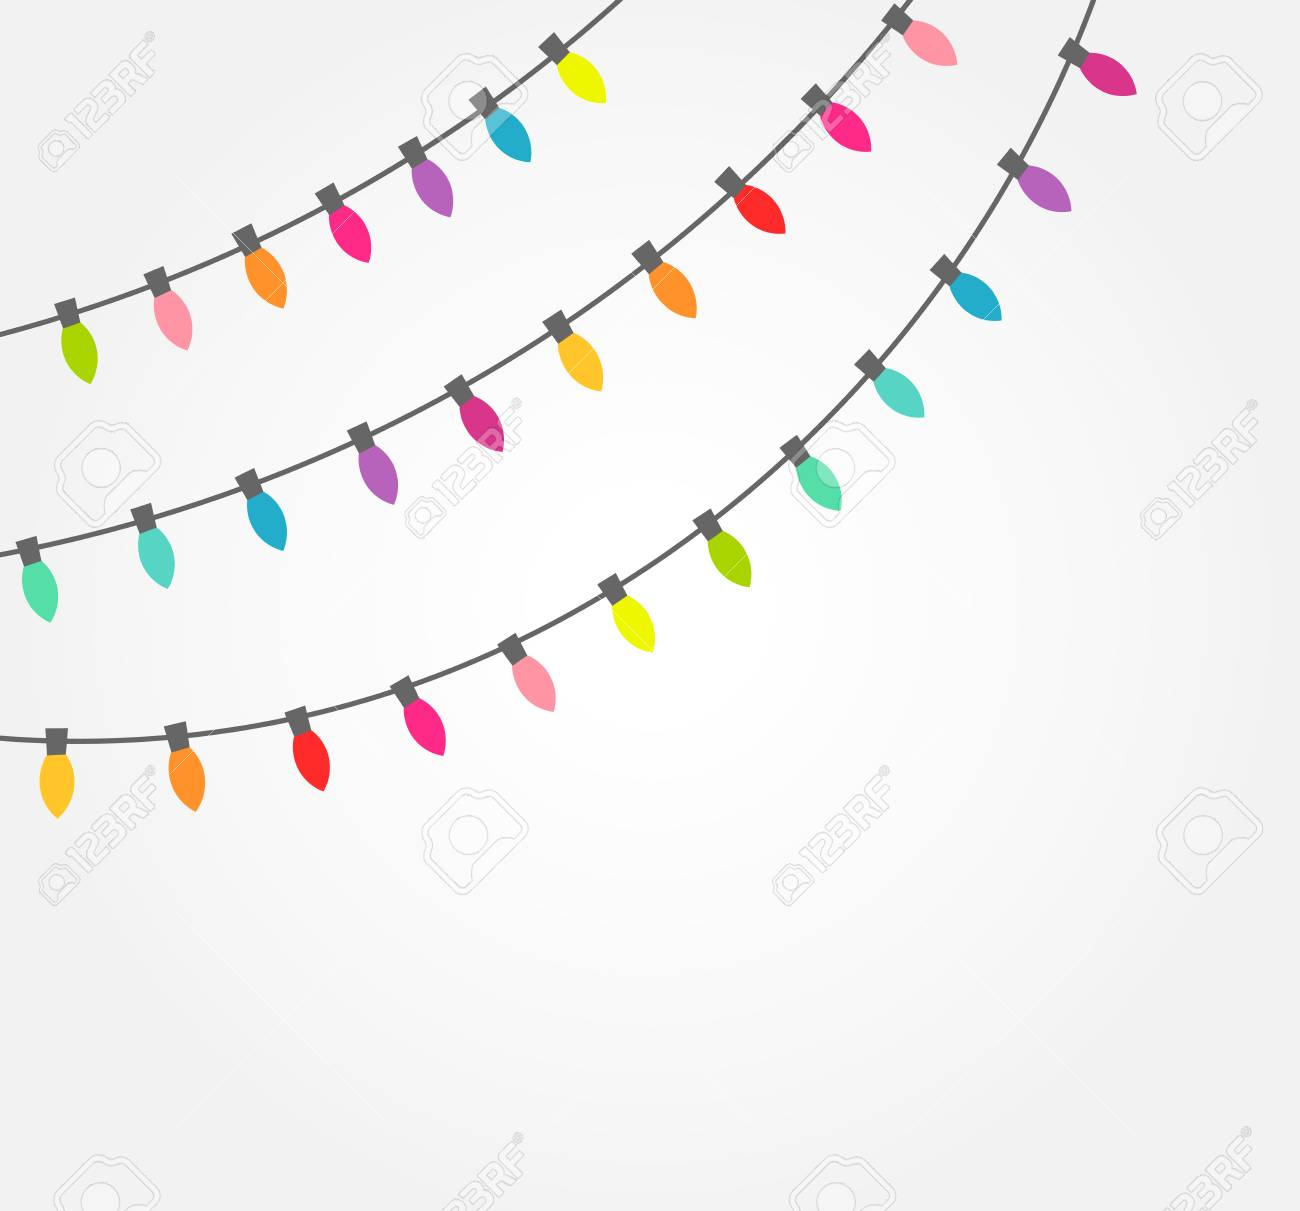 Christmas Lights Vector Free.Strings Of Colorful Decorative Christmas Lights Vector Illustration